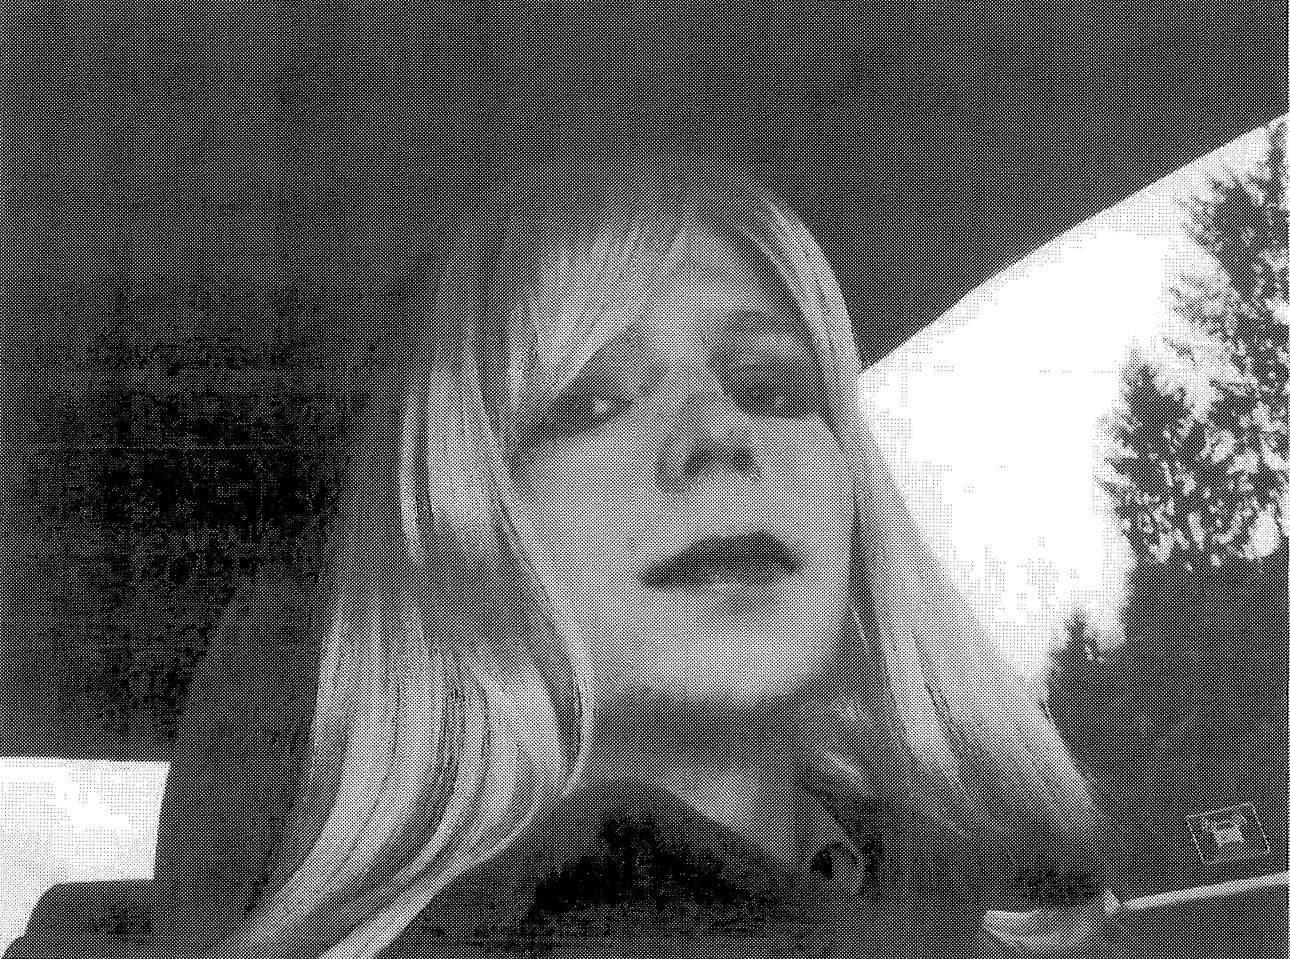 2017-05-16T170706Z_739743175_RC1B9A73AE30_RTRMADP_3_USA-WIKILEAKS-MANNING